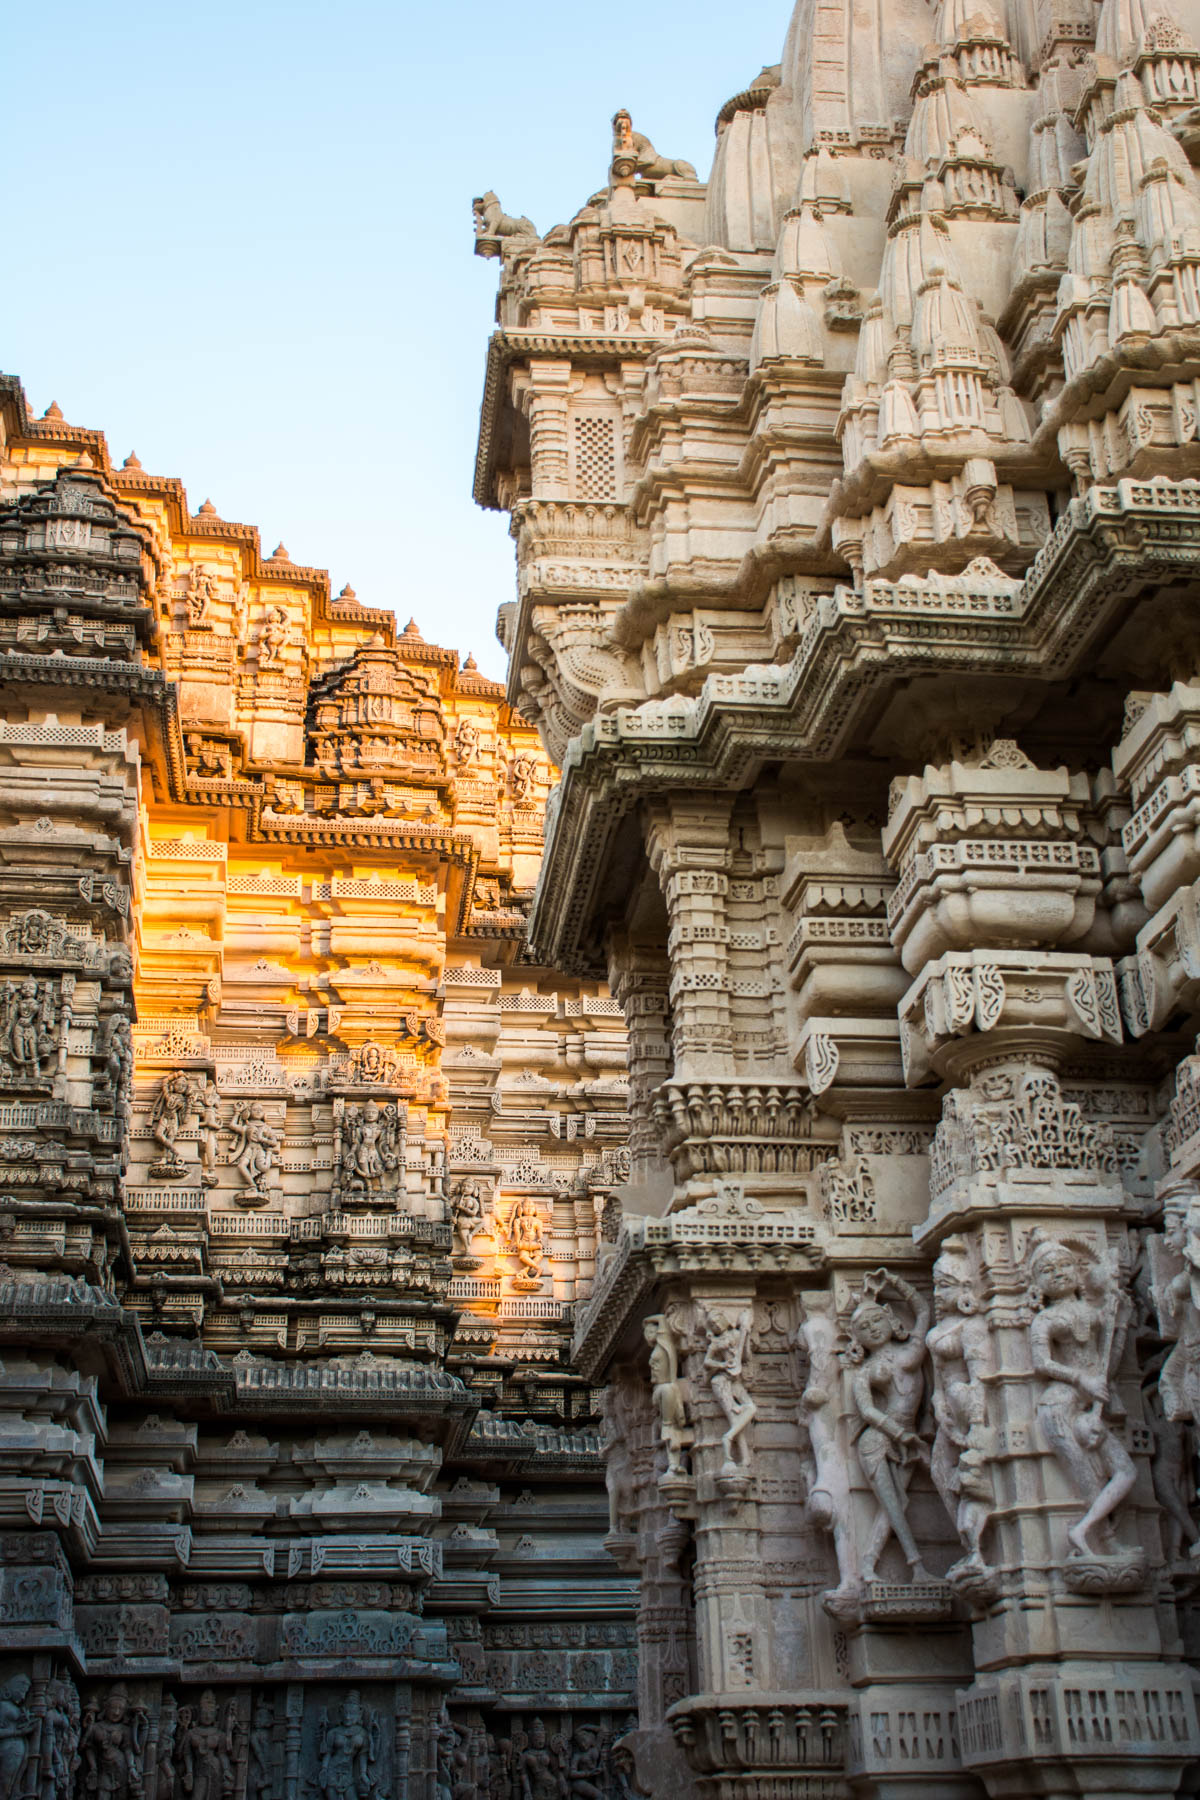 Intricately carved details on the sides of a Jain temple in Palitana, Gujarat state, India.